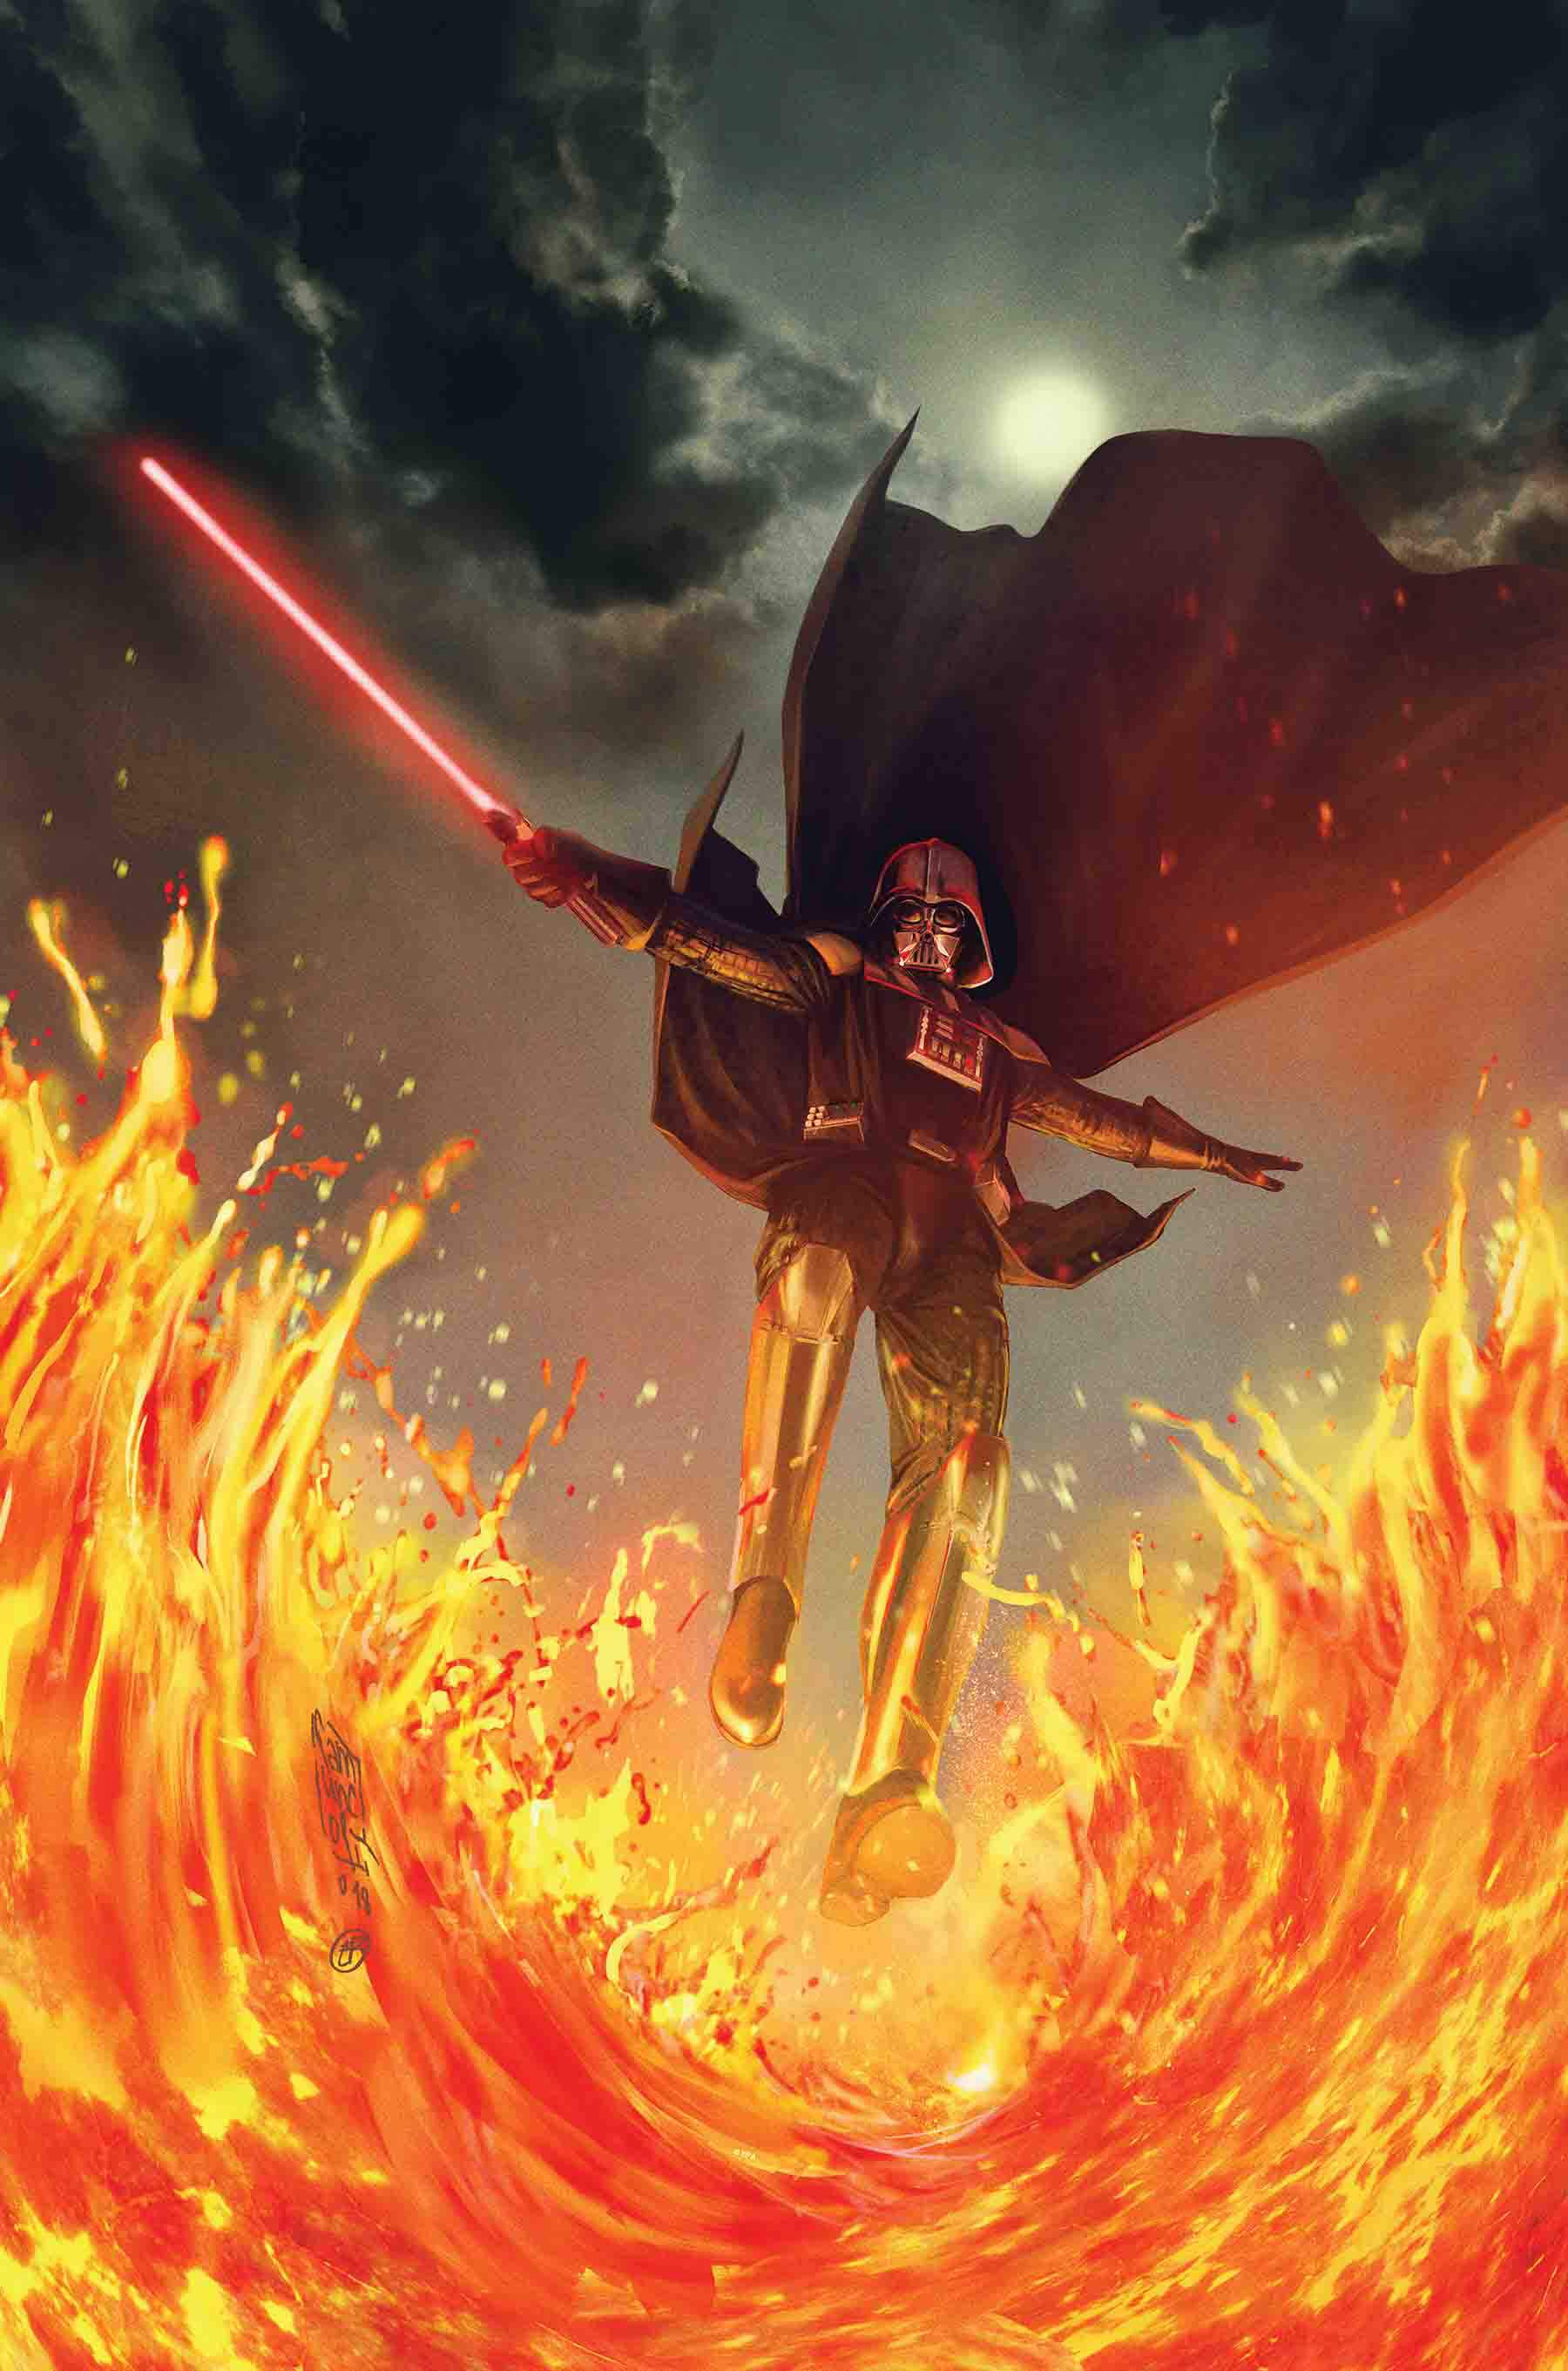 Darth Vader looks badass in this